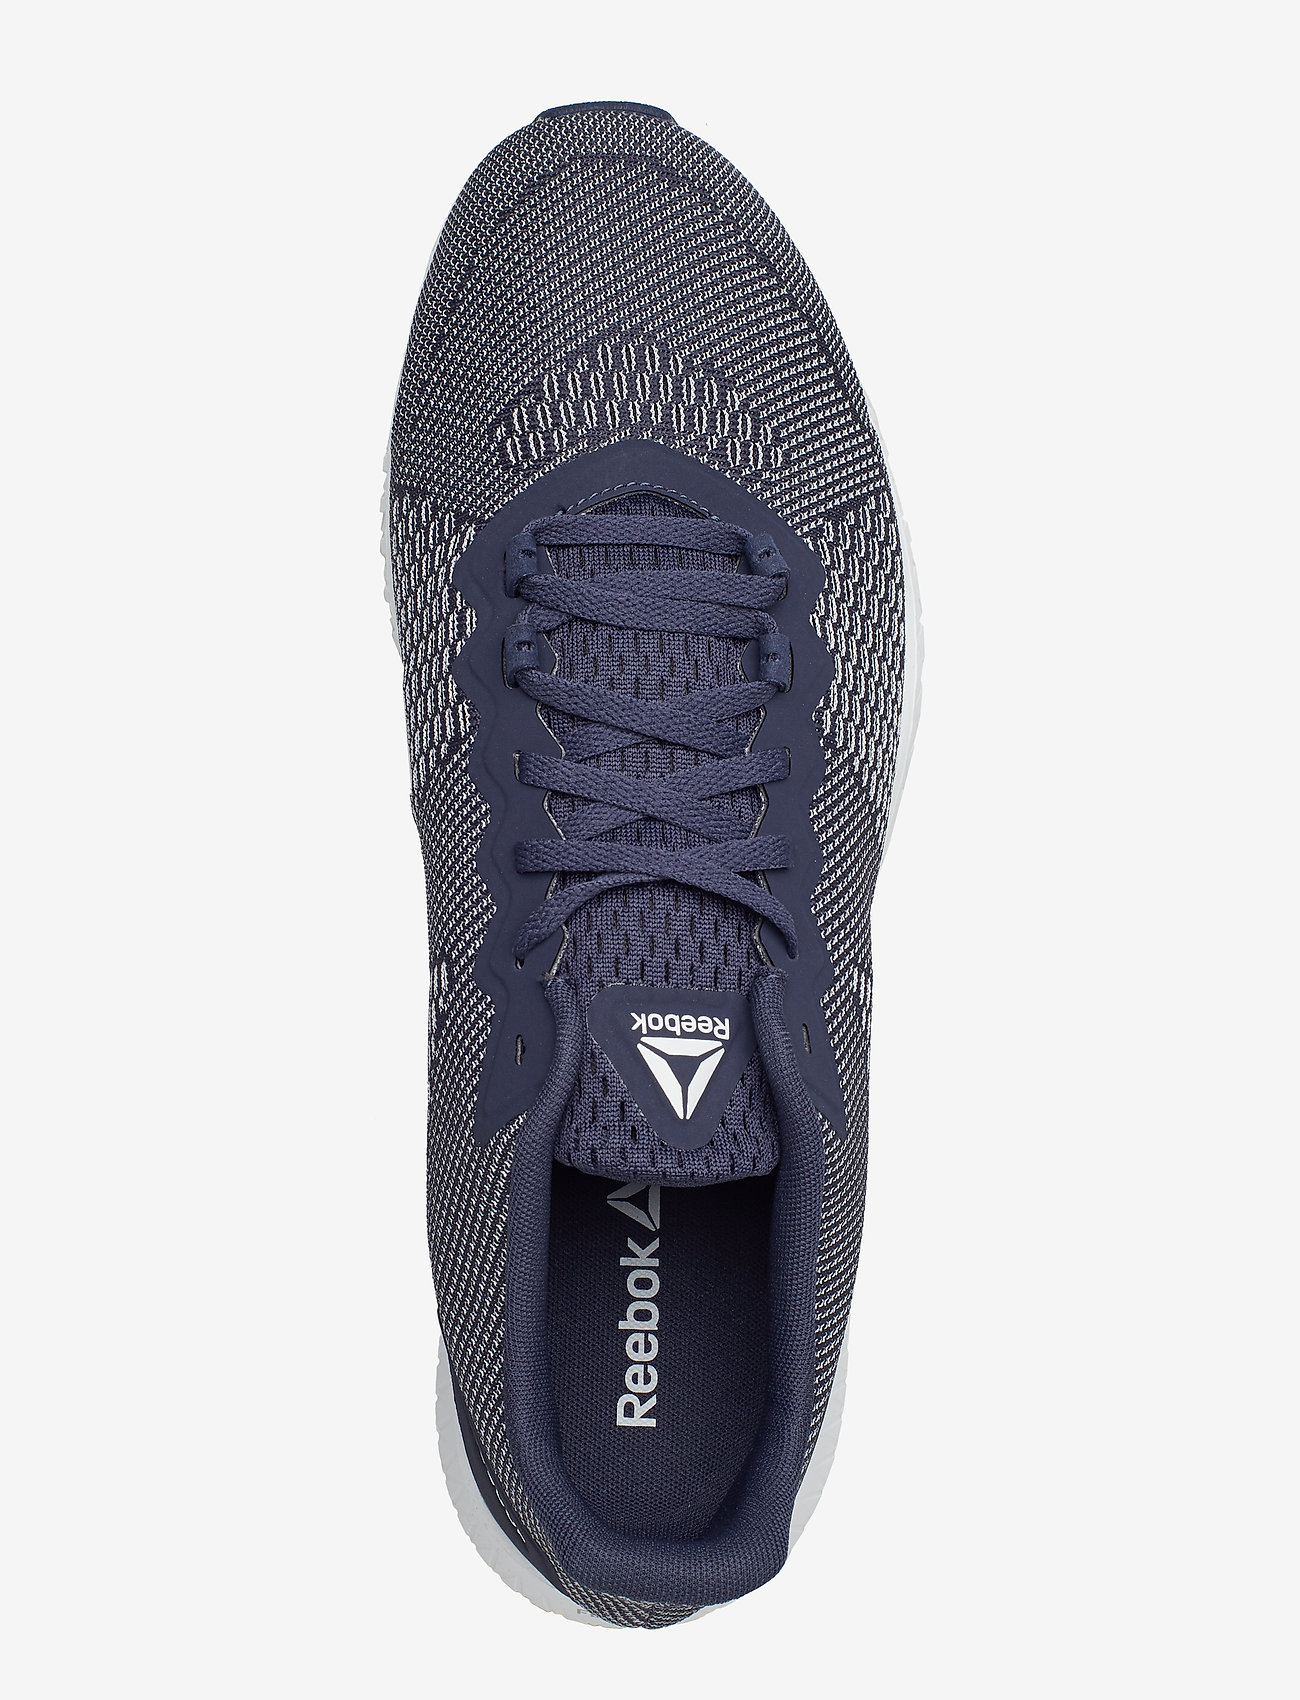 Reebok Flexagon (Navy/white) - Reebok Performance